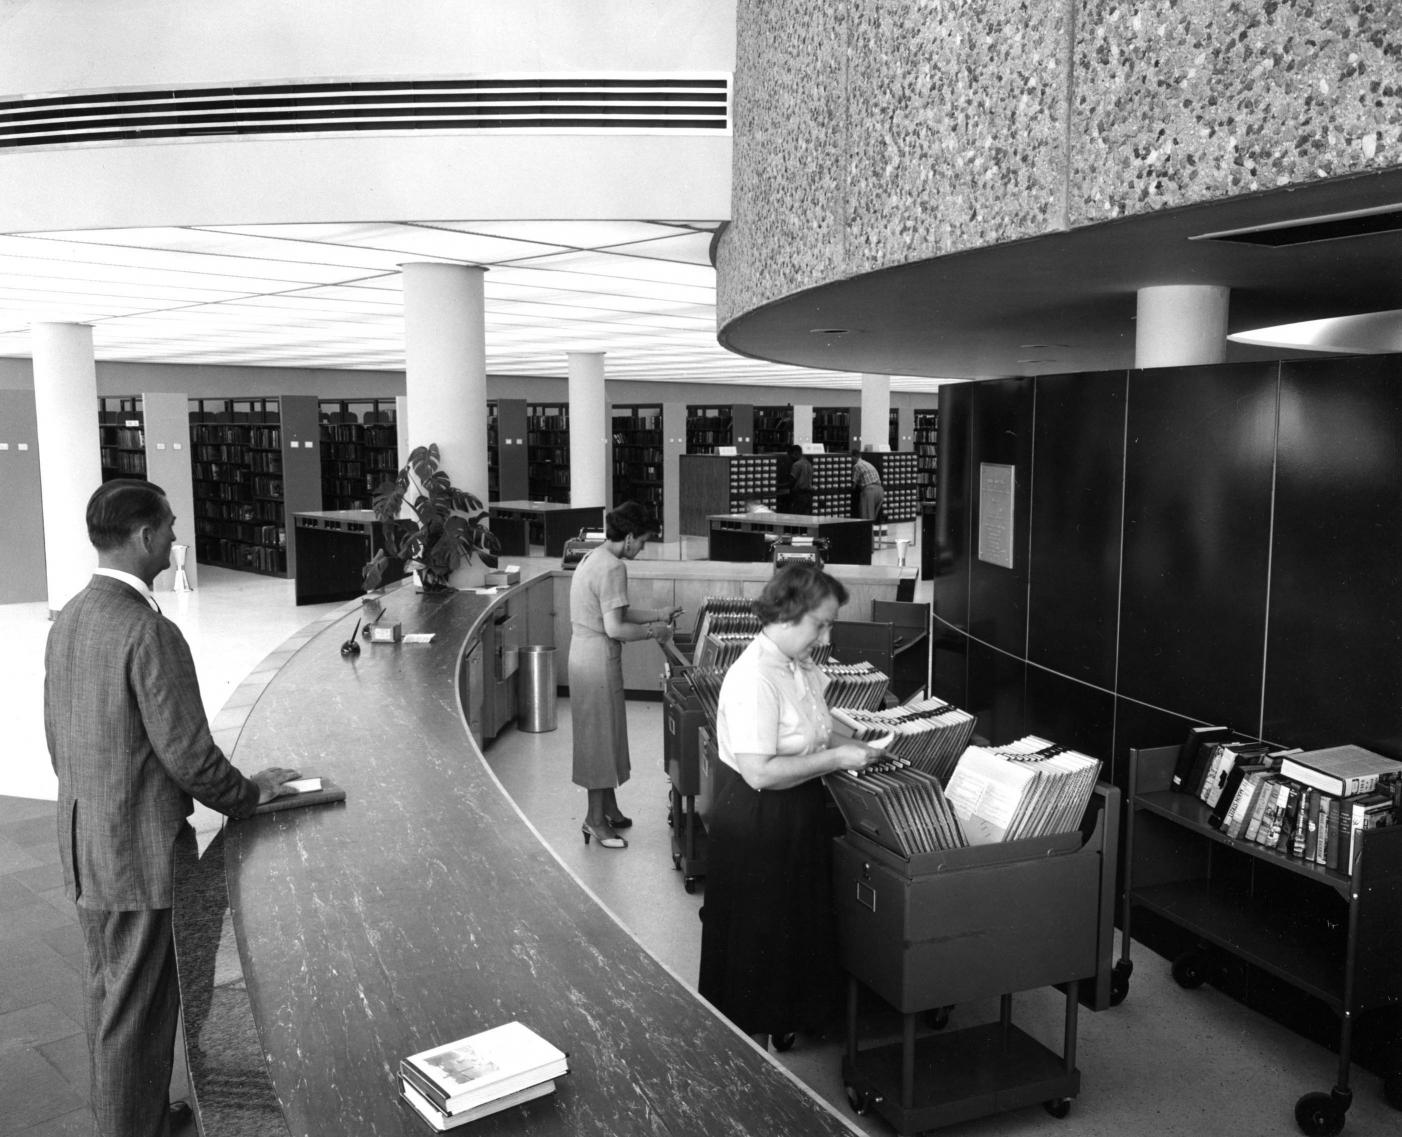 Views of the Main Library, 1956